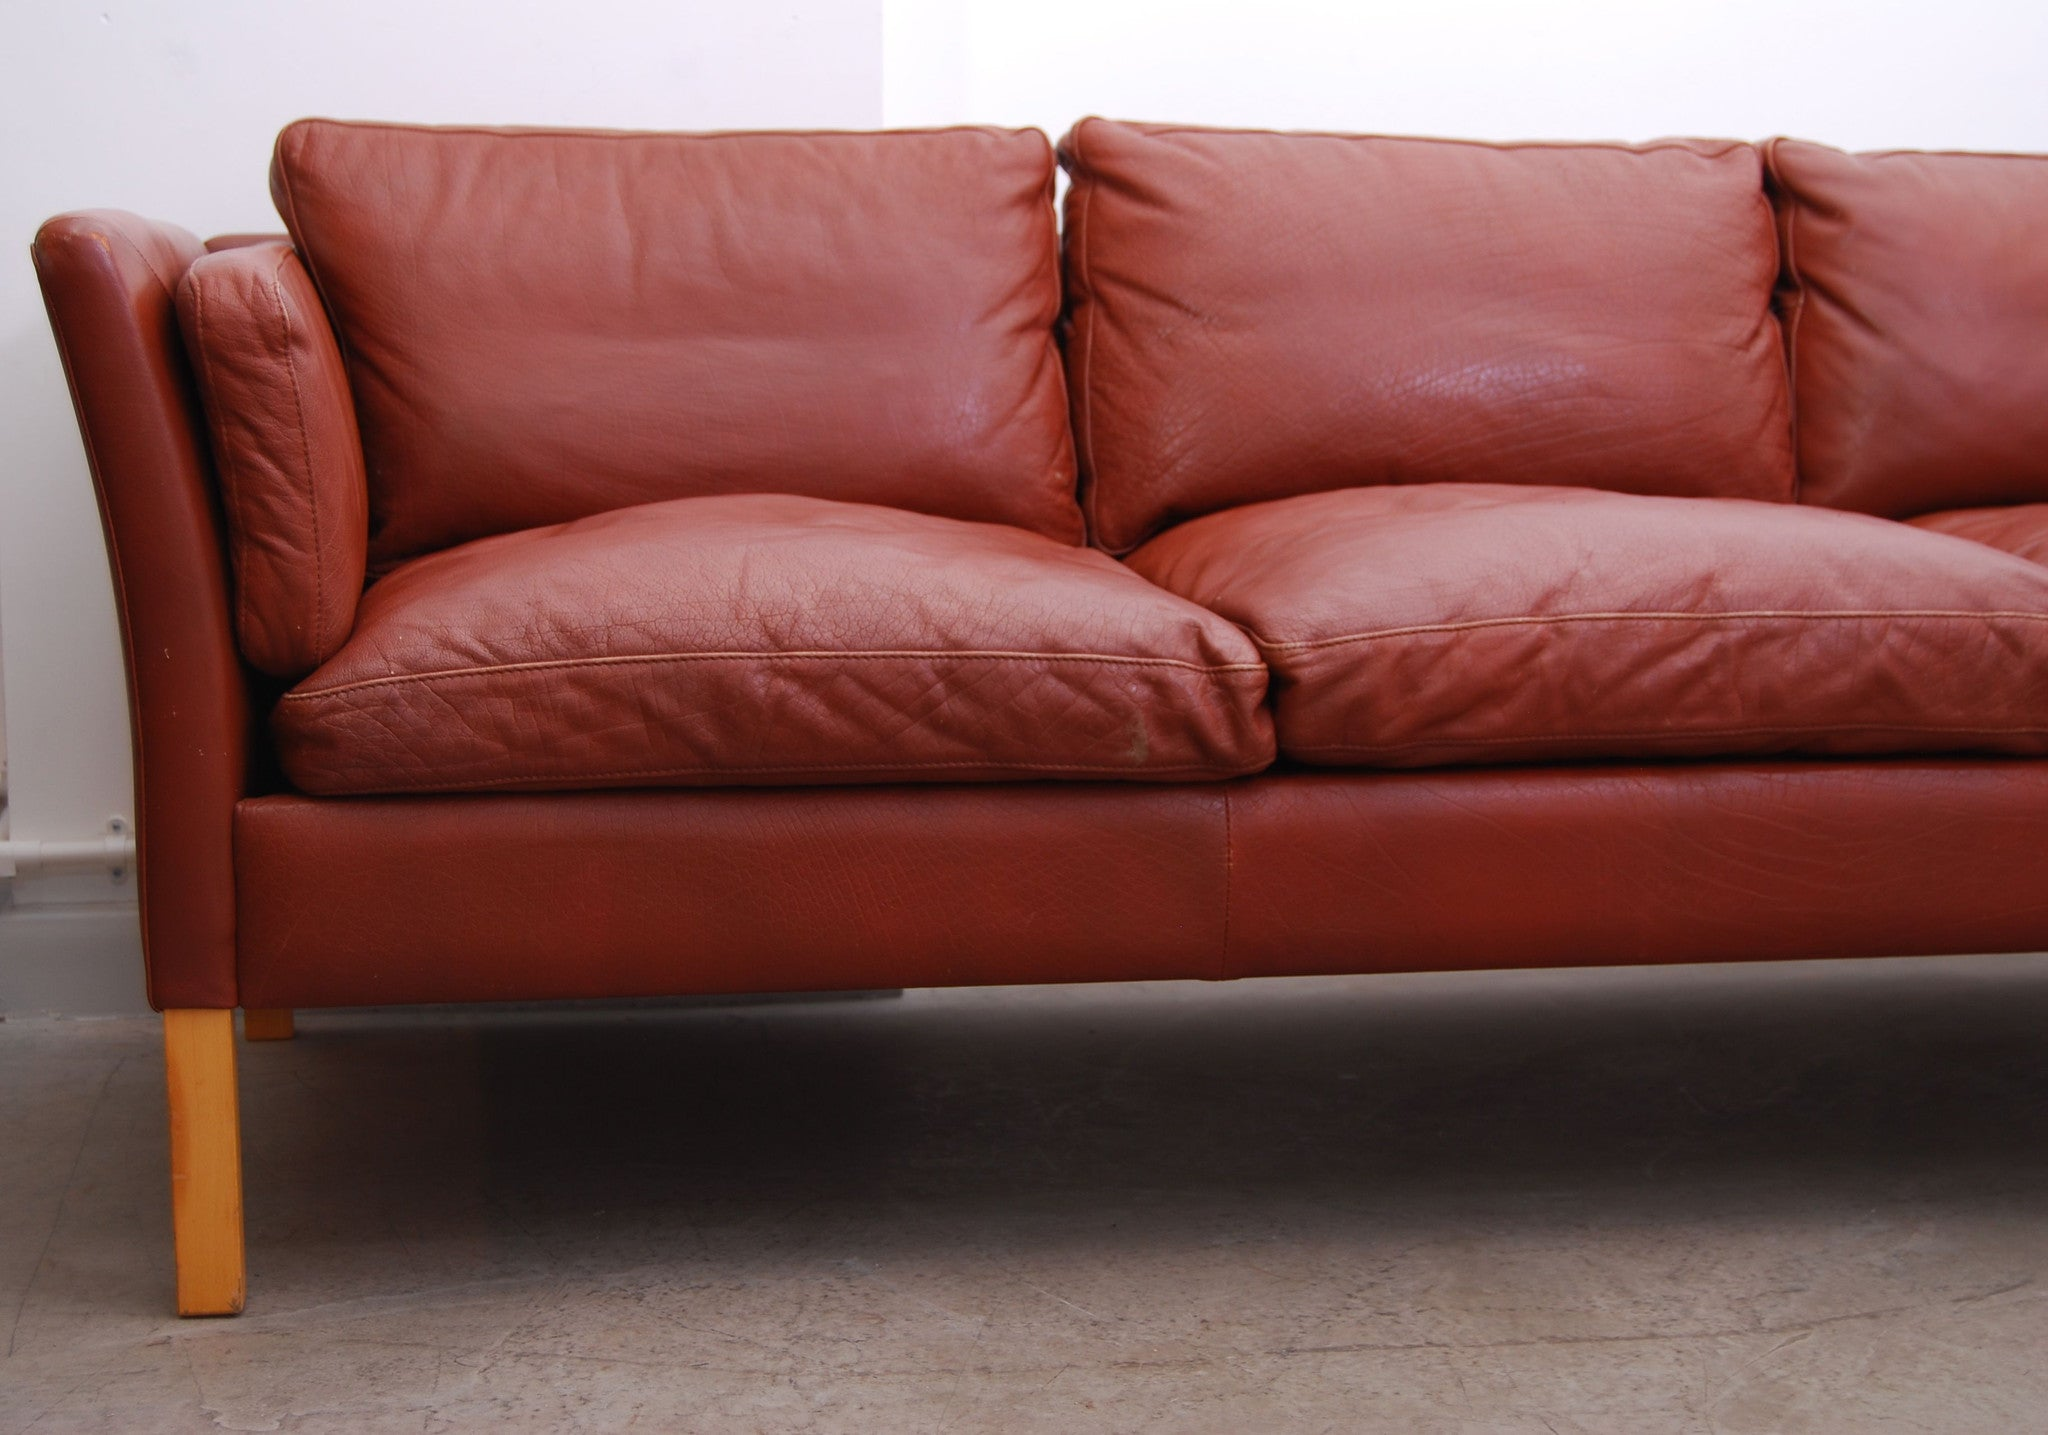 Three seat leather sofa by Stouby